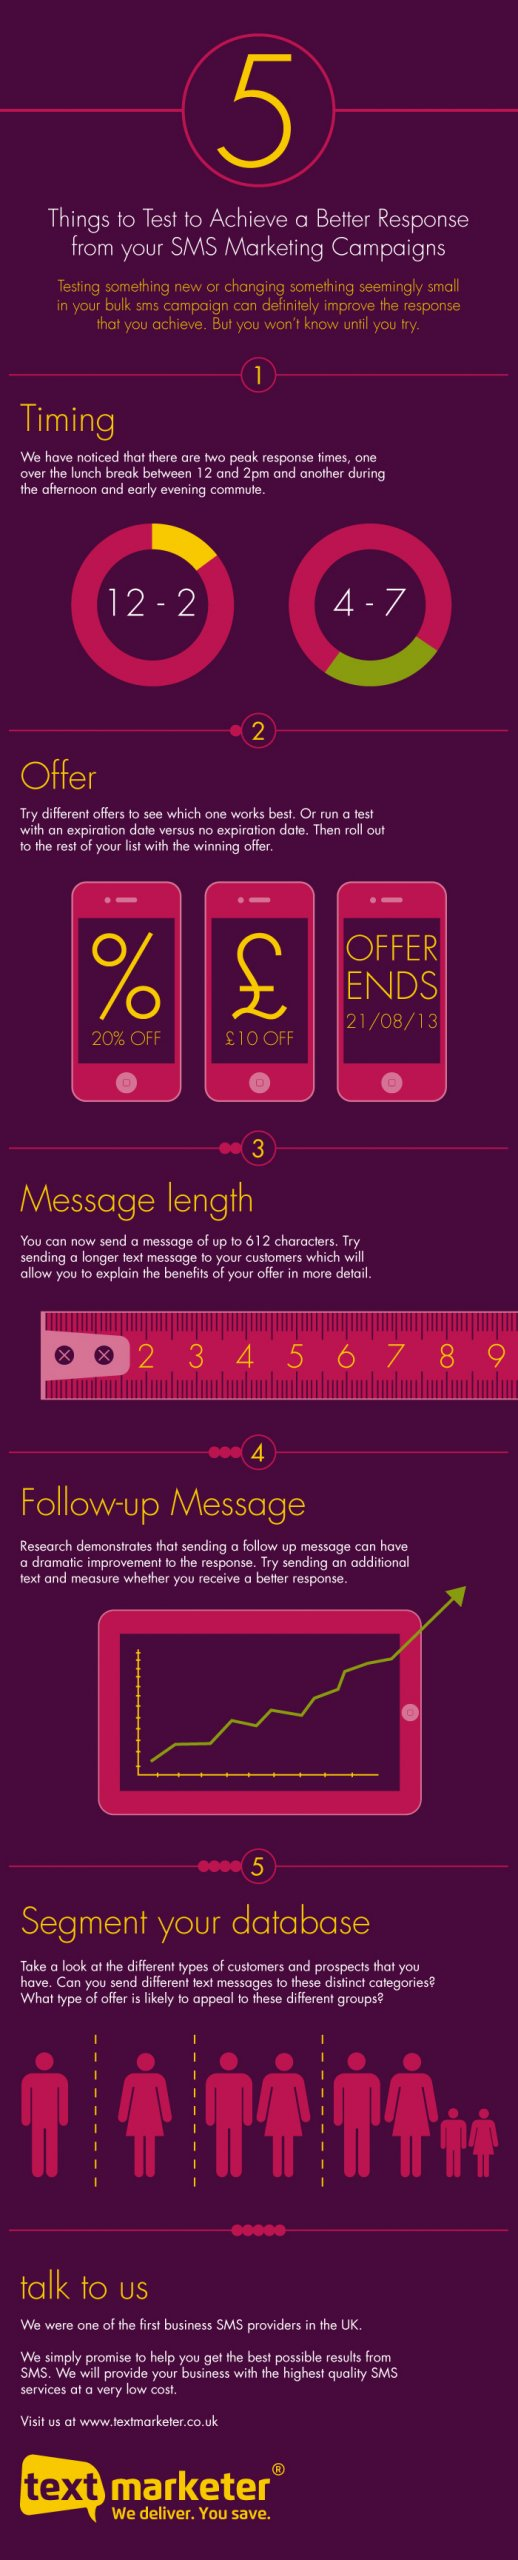 Text Marketer achieve better response from sms marketing infographic